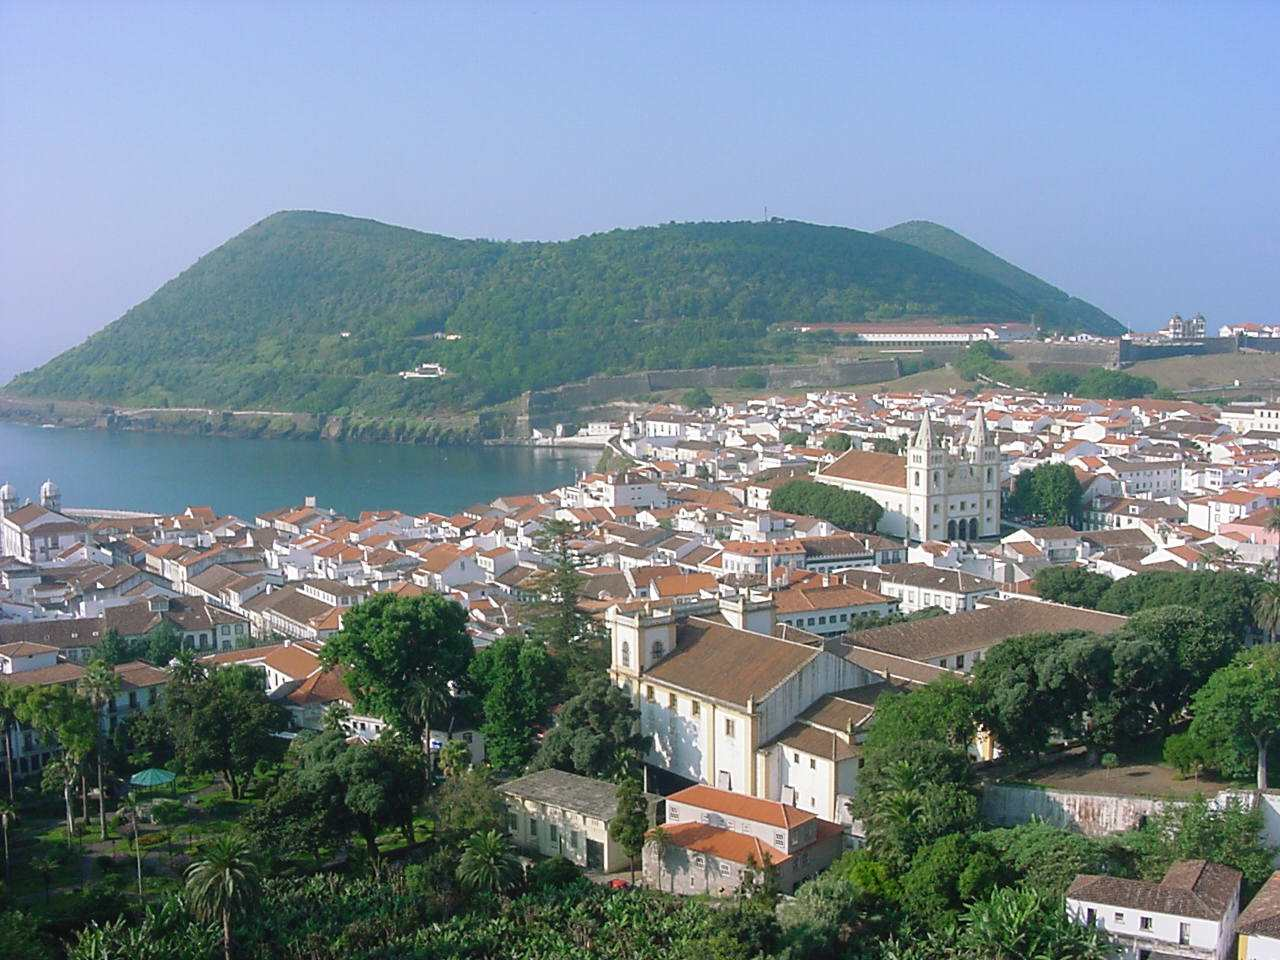 Angra do Heroismo, Açores